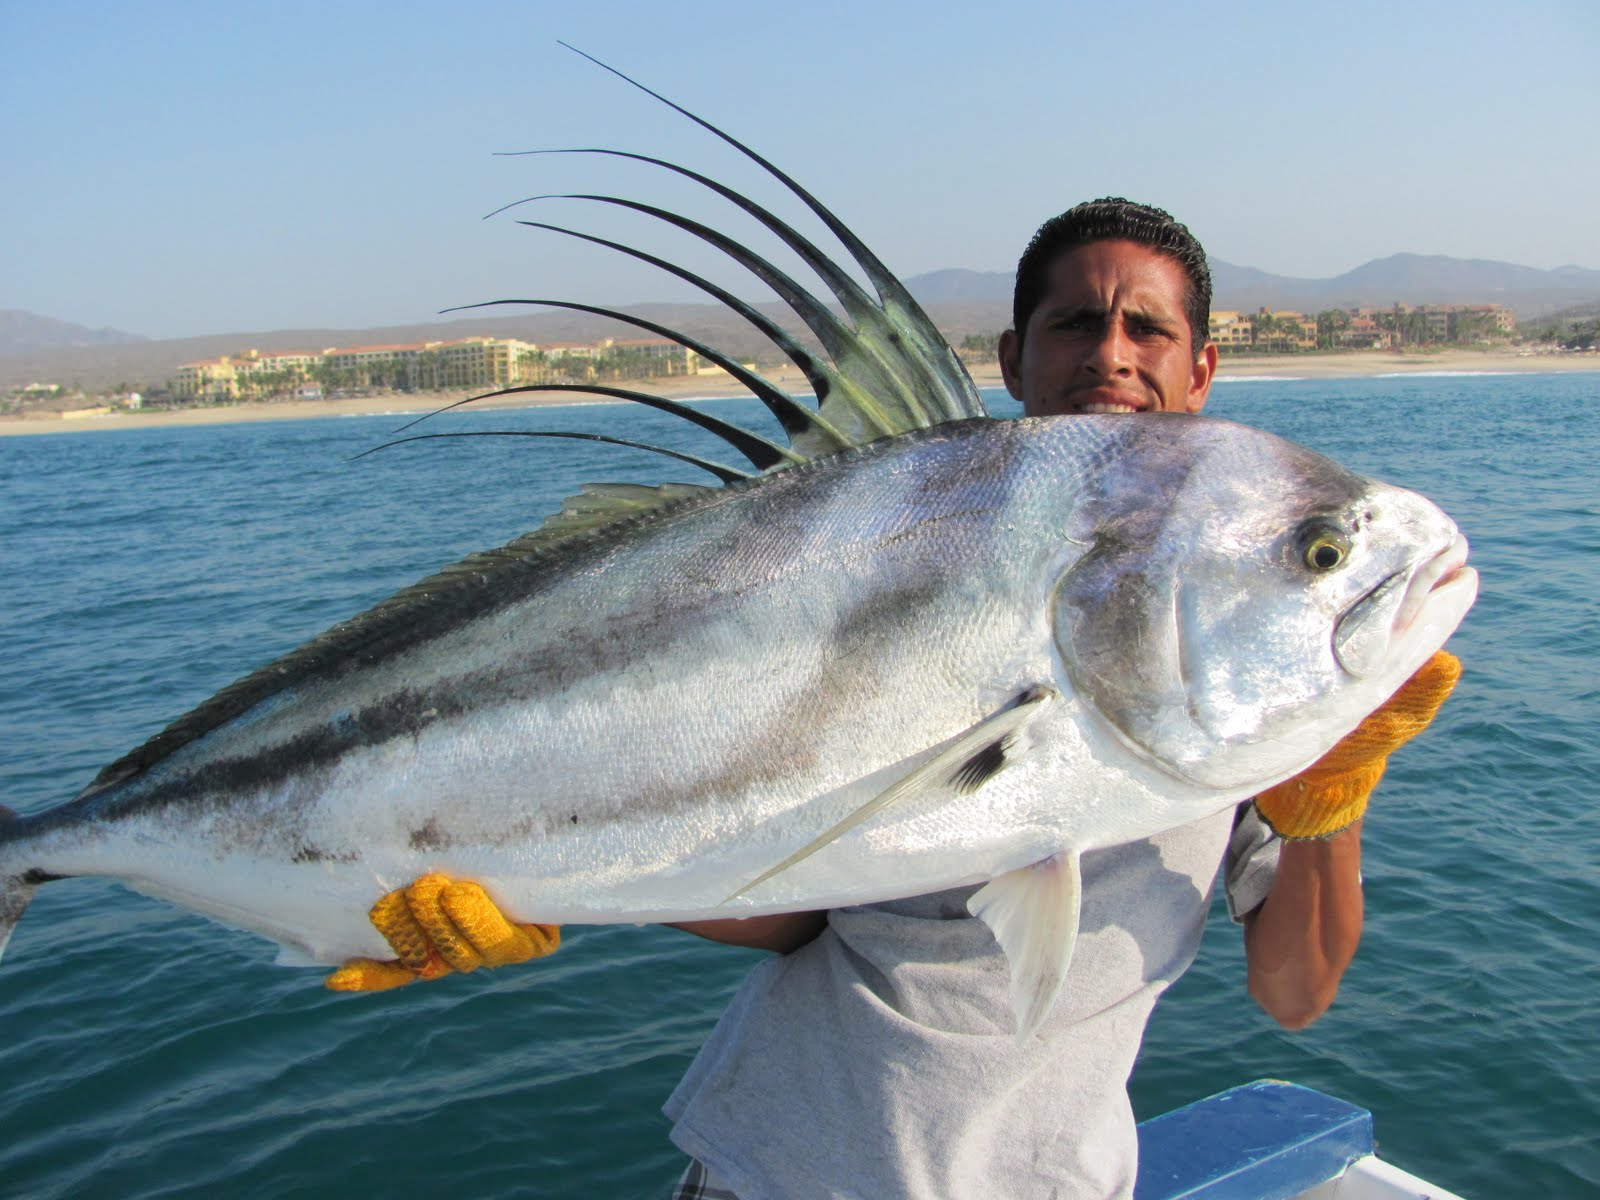 Redrum sportfishing fish report jun 24 2011 for Rooster fish cabo